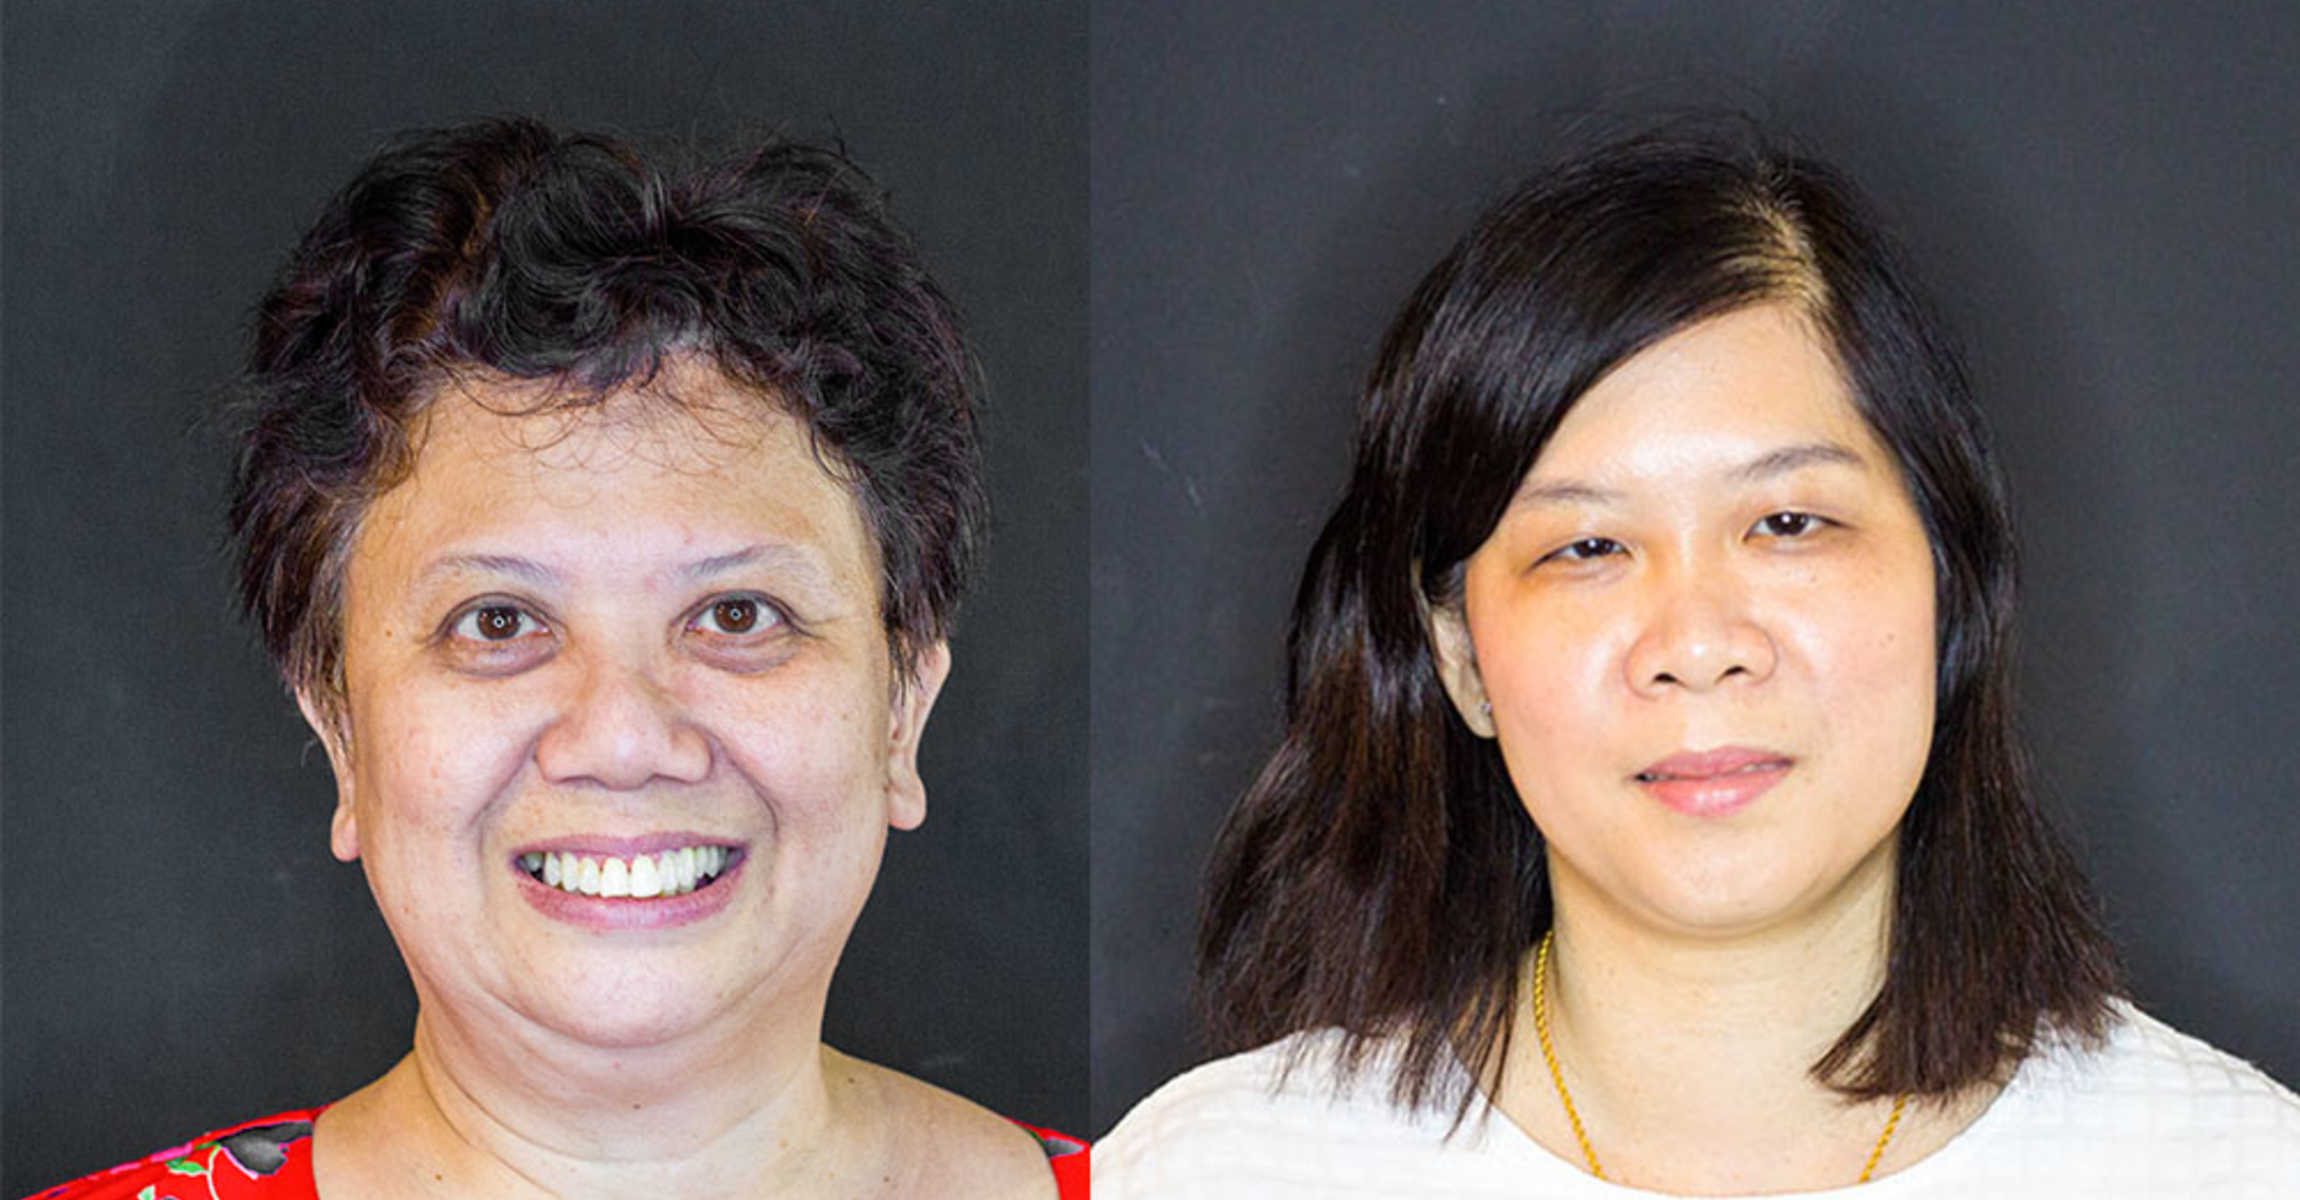 2 Mothers Get the Hair Makeover Their Daughters Wanted